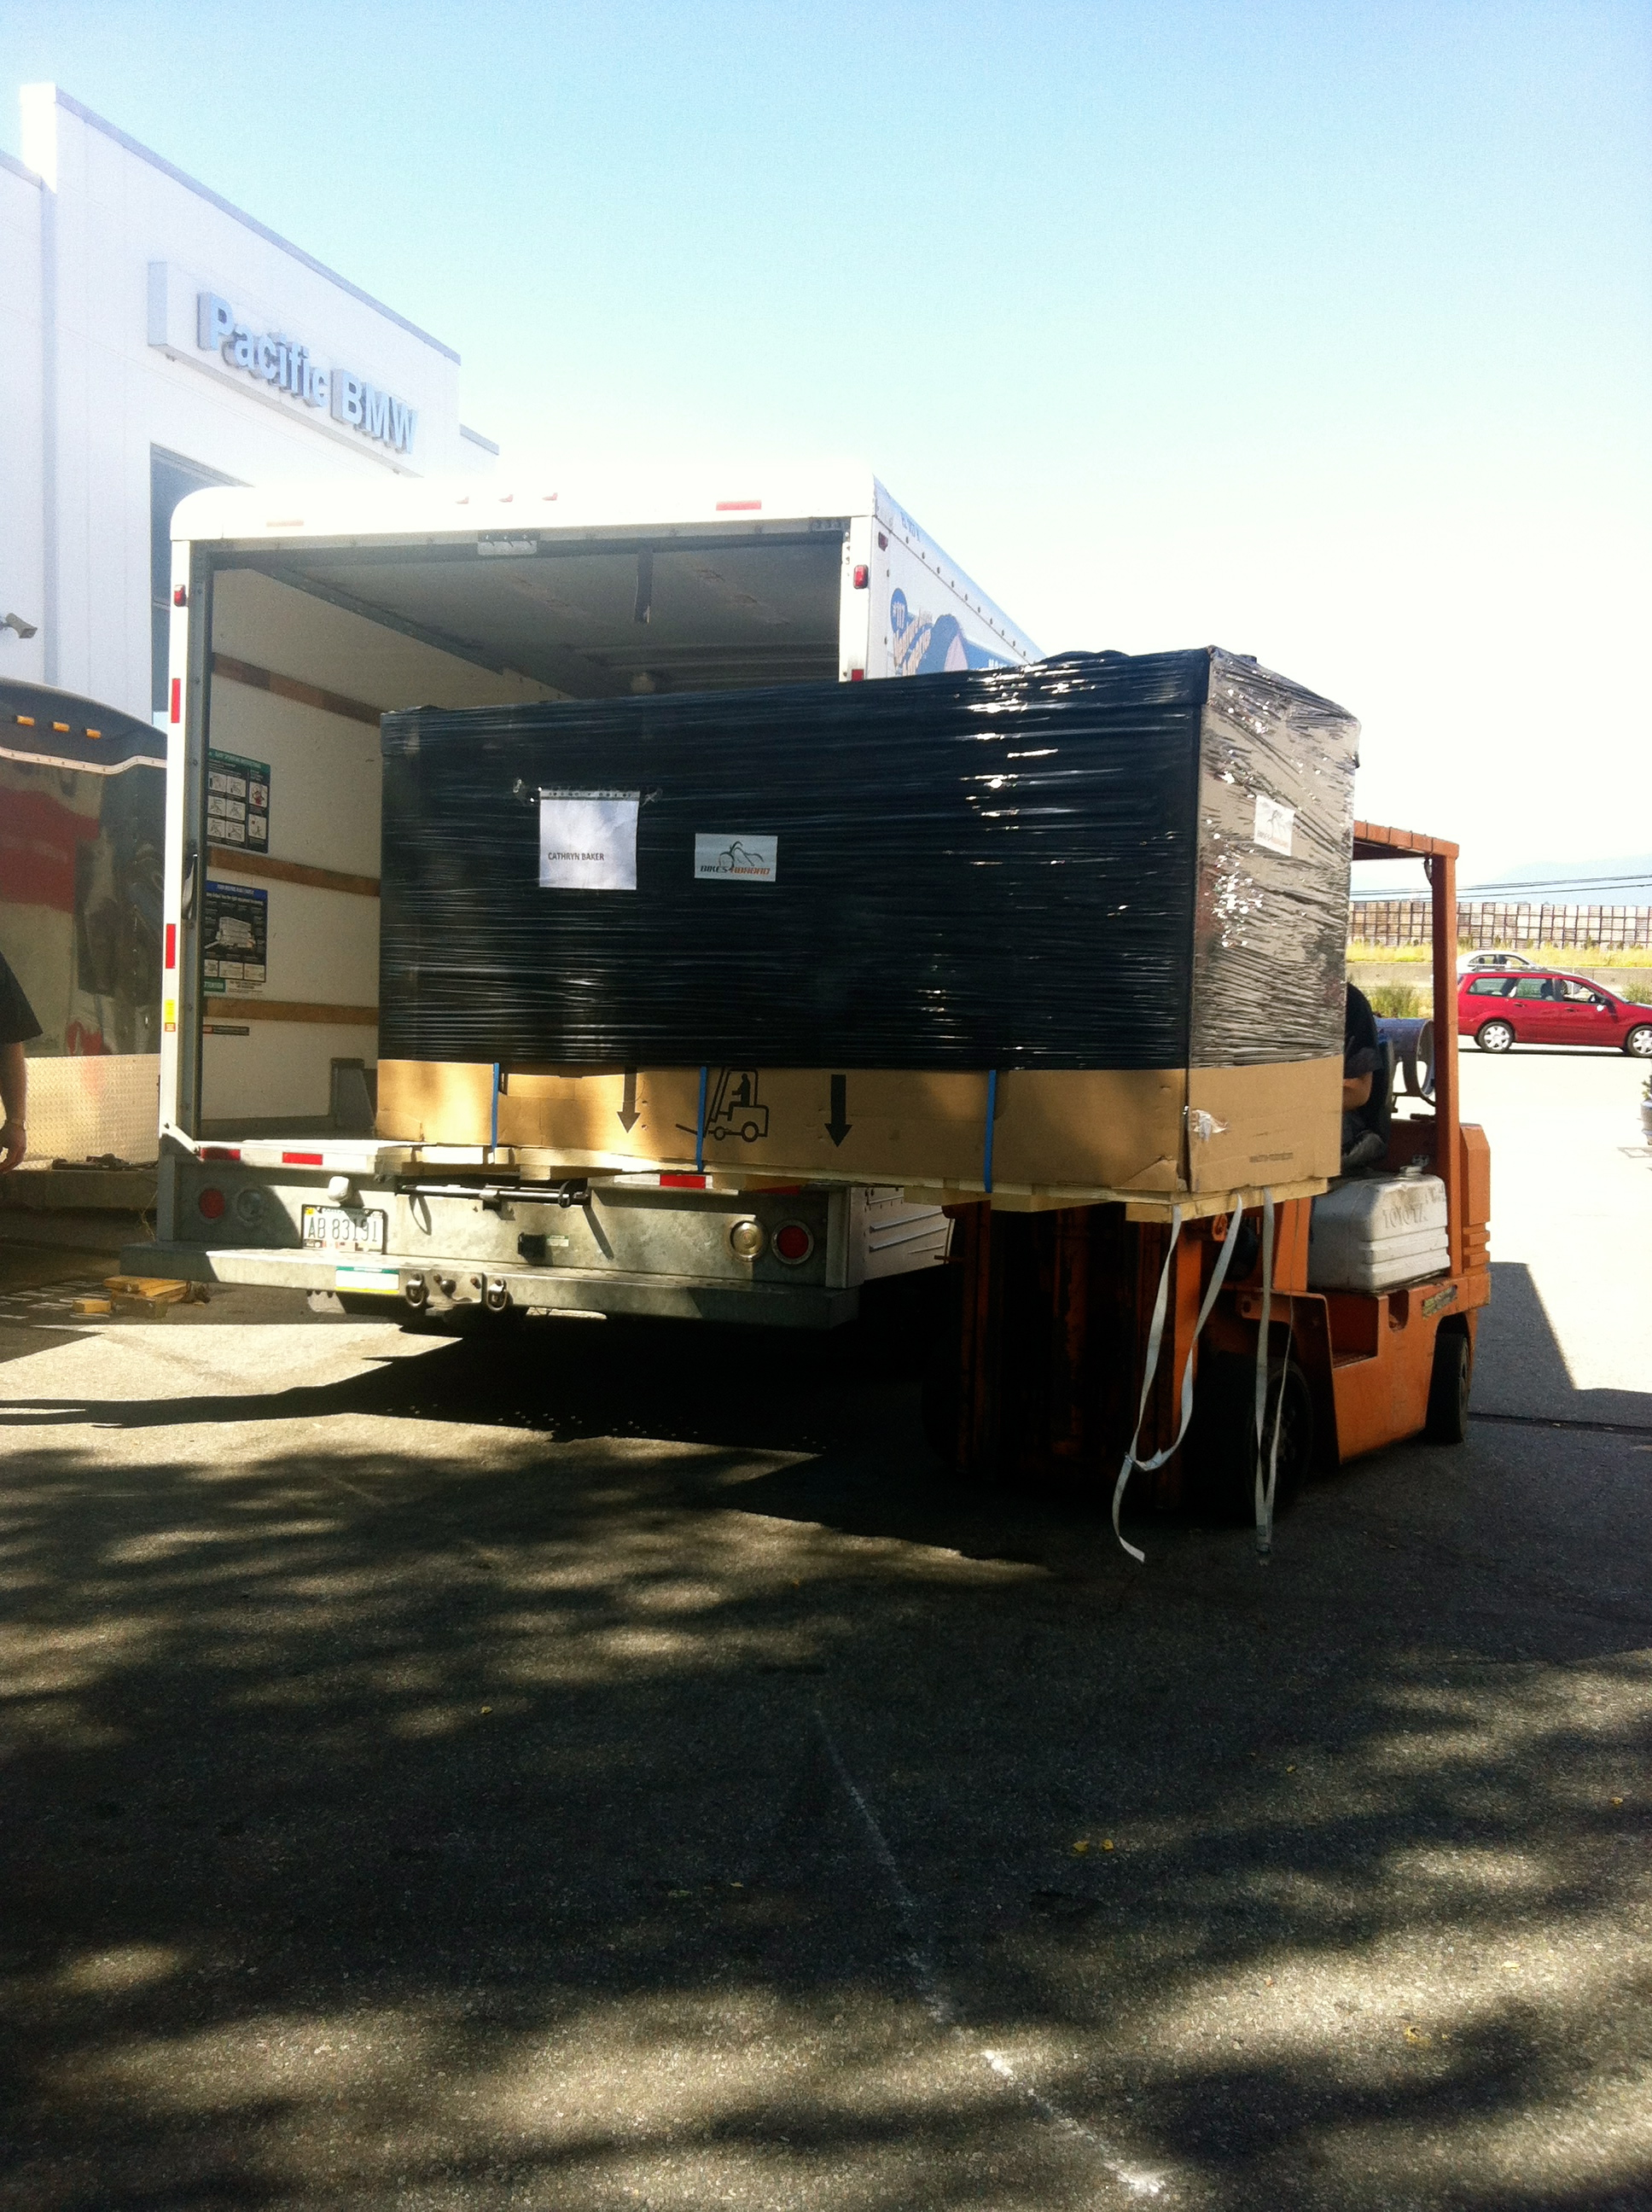 Unloading at Pacific BMV, Vancouver, Canada.